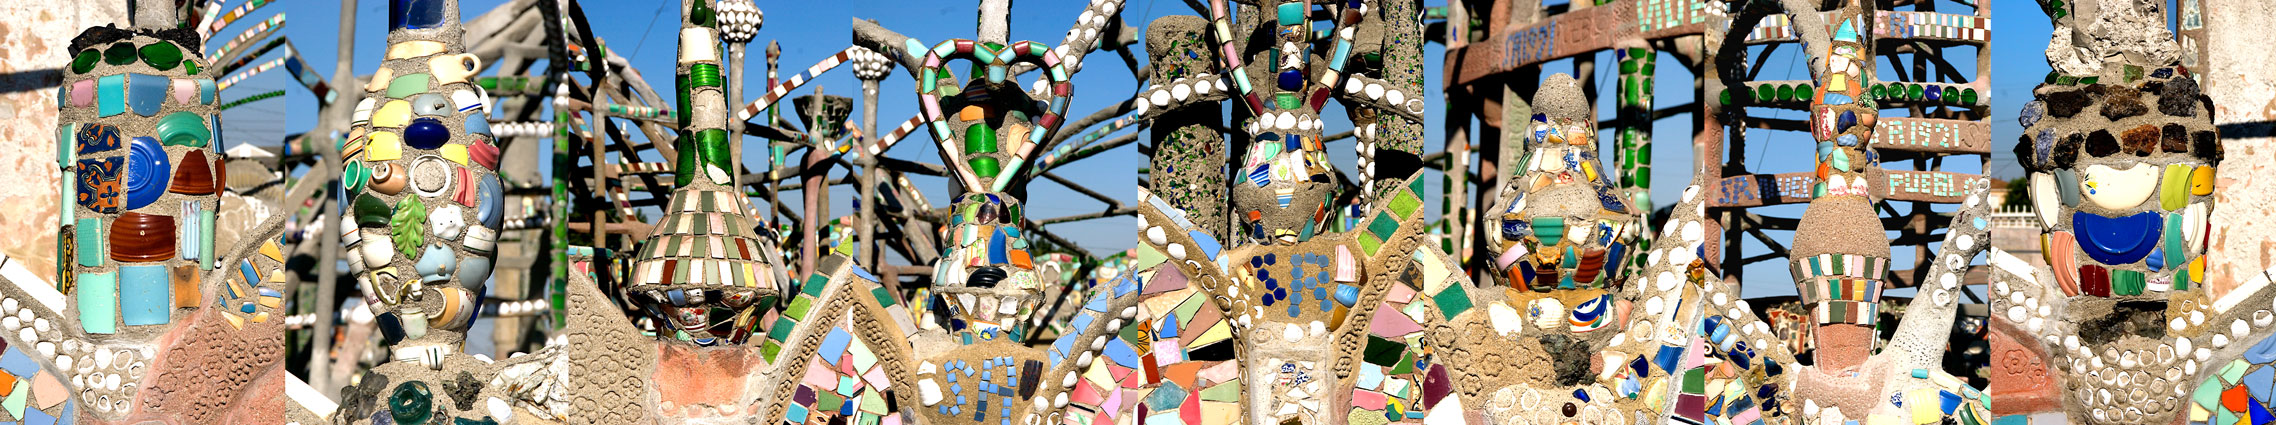 Watts Towers, Los Angeles, 2008